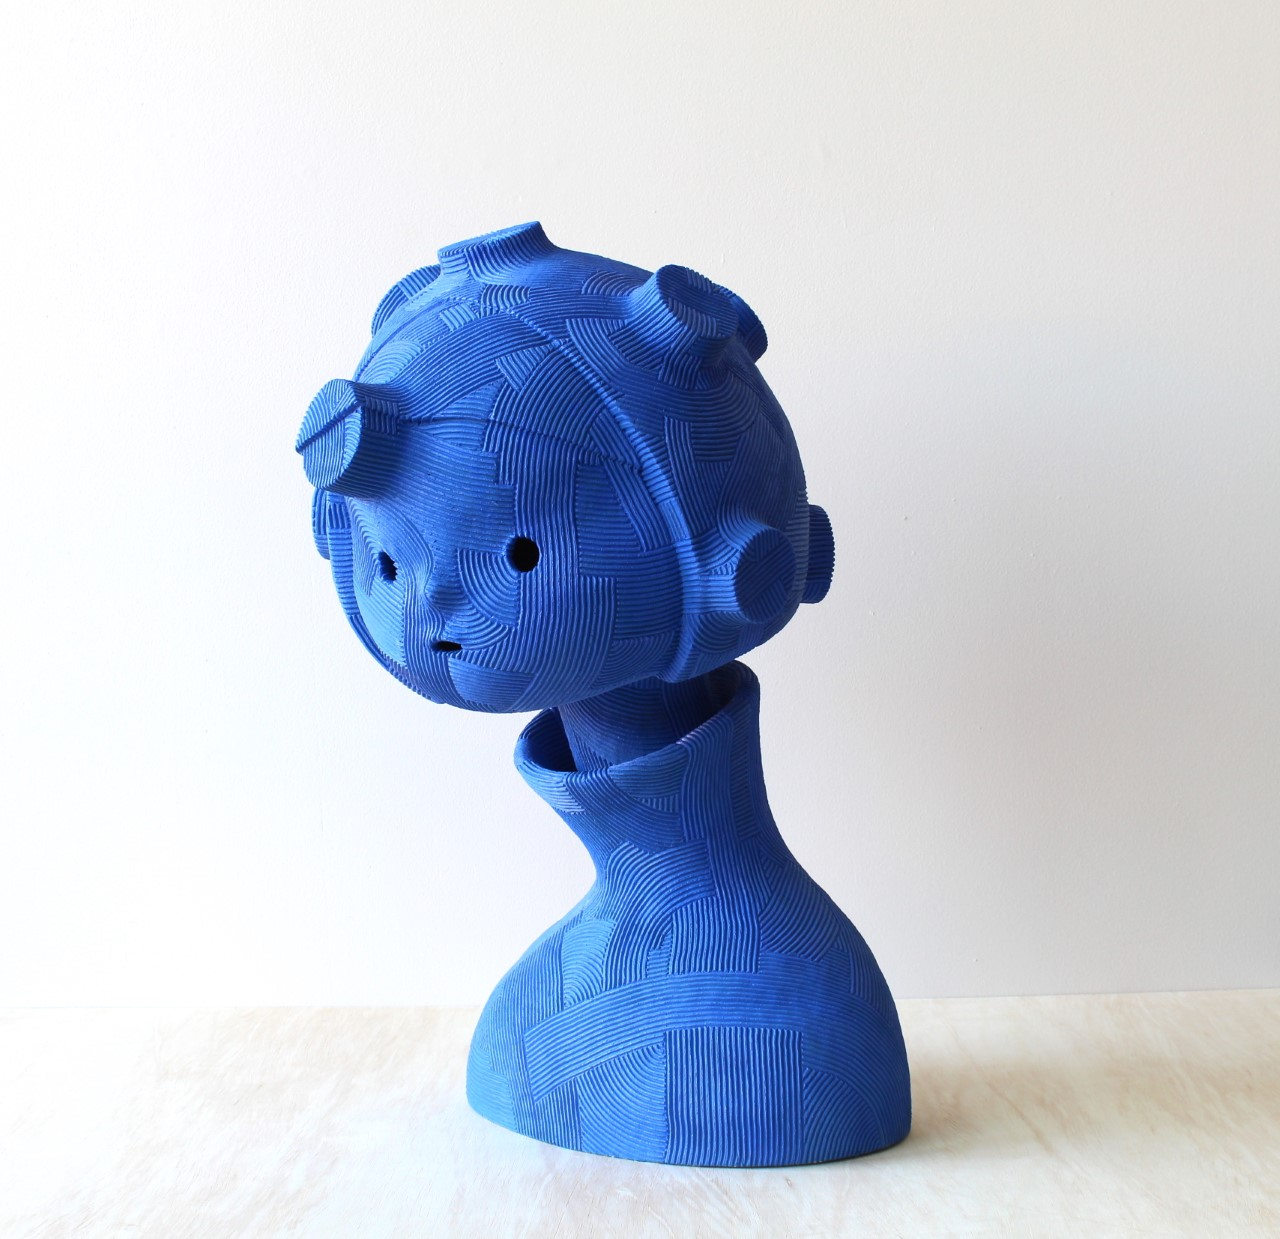 Mutation Girl , 2018 ceramic 27 x 17 x 41 inches